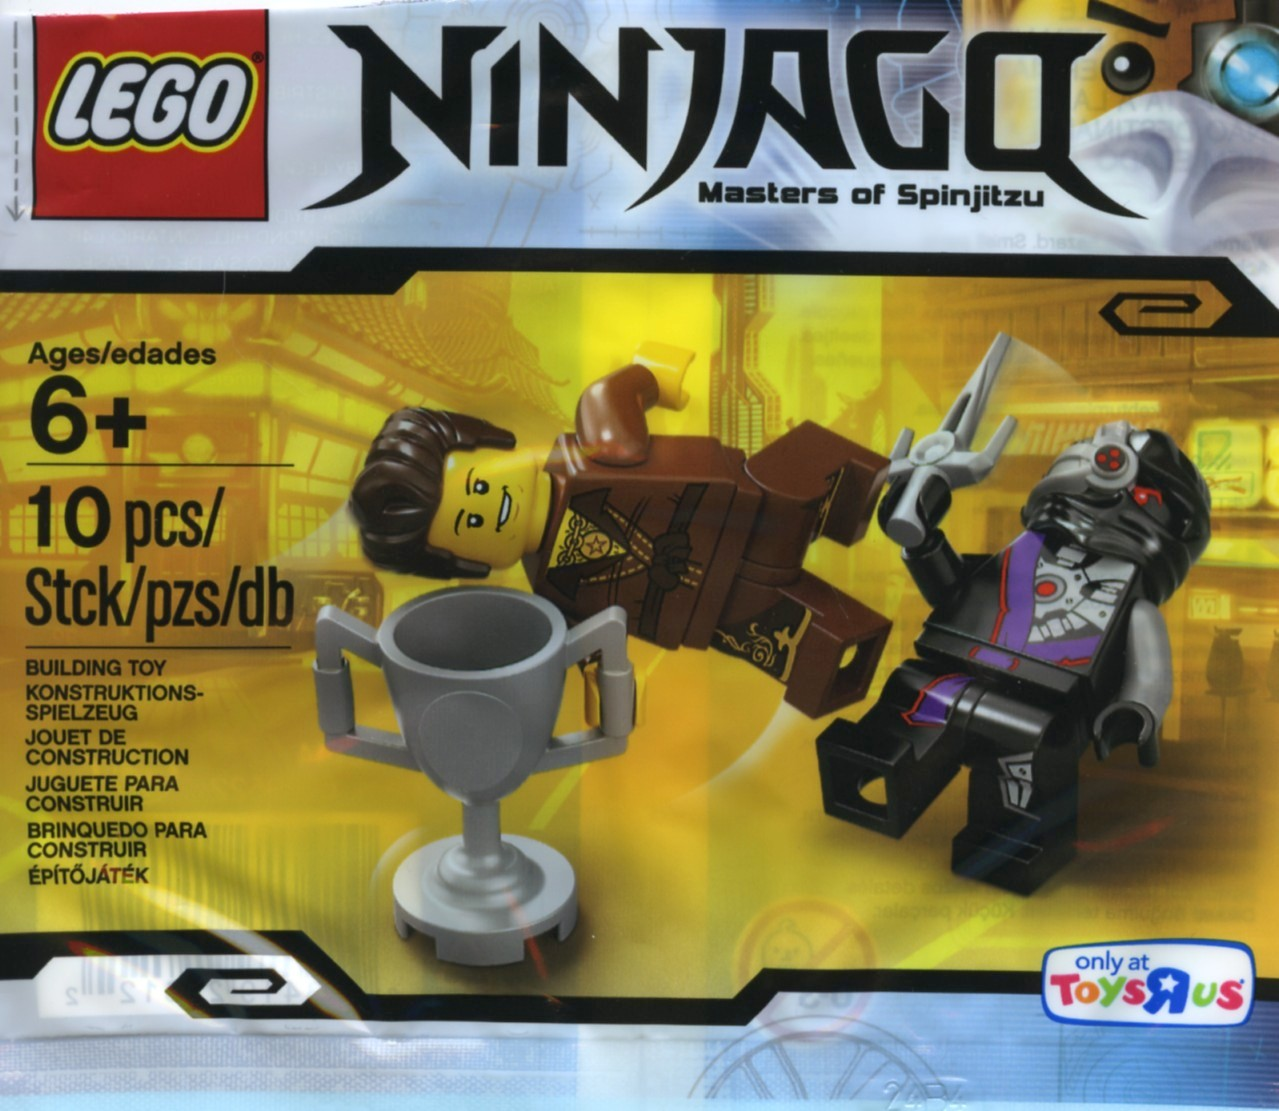 BricksetLego Set And Database NinjagoExtended Guide UqpjLSzMVG